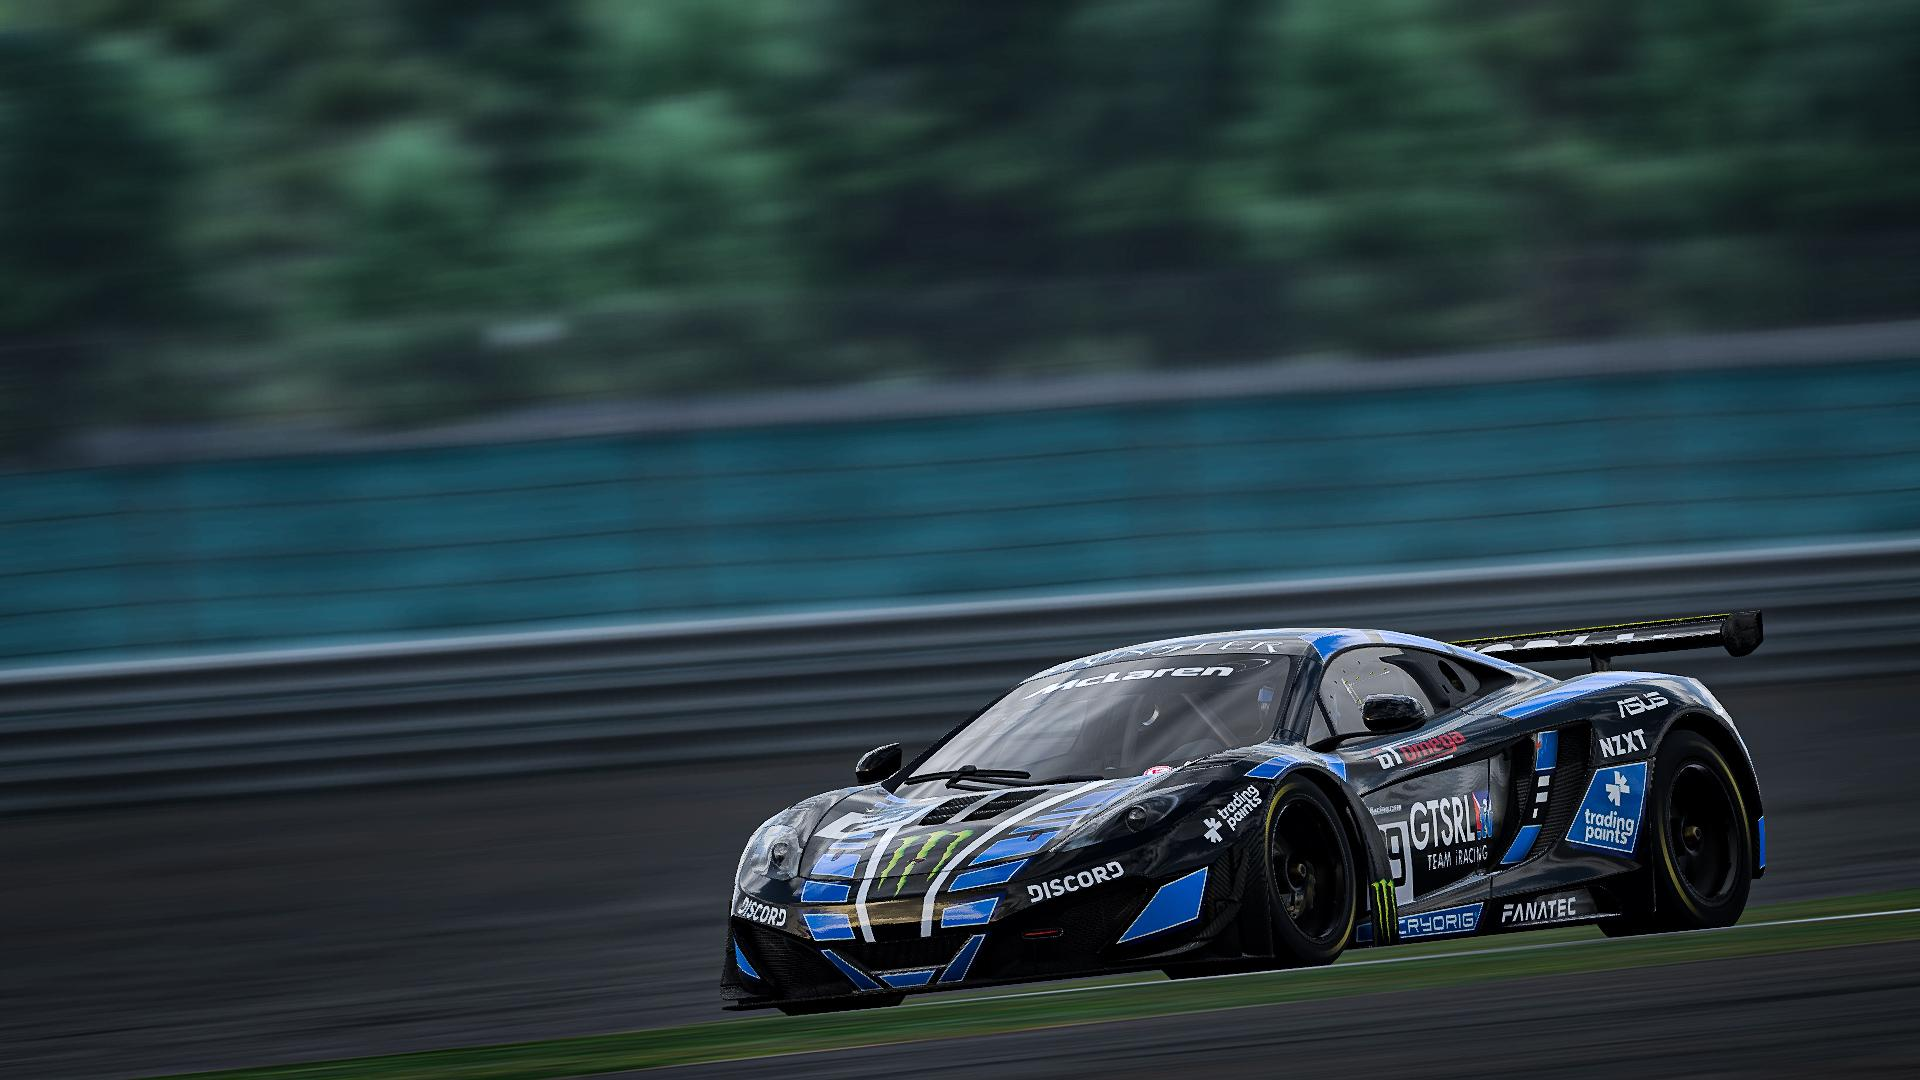 Preview of GTSRL McLaren MP4-12C GT3 by Vincent W.